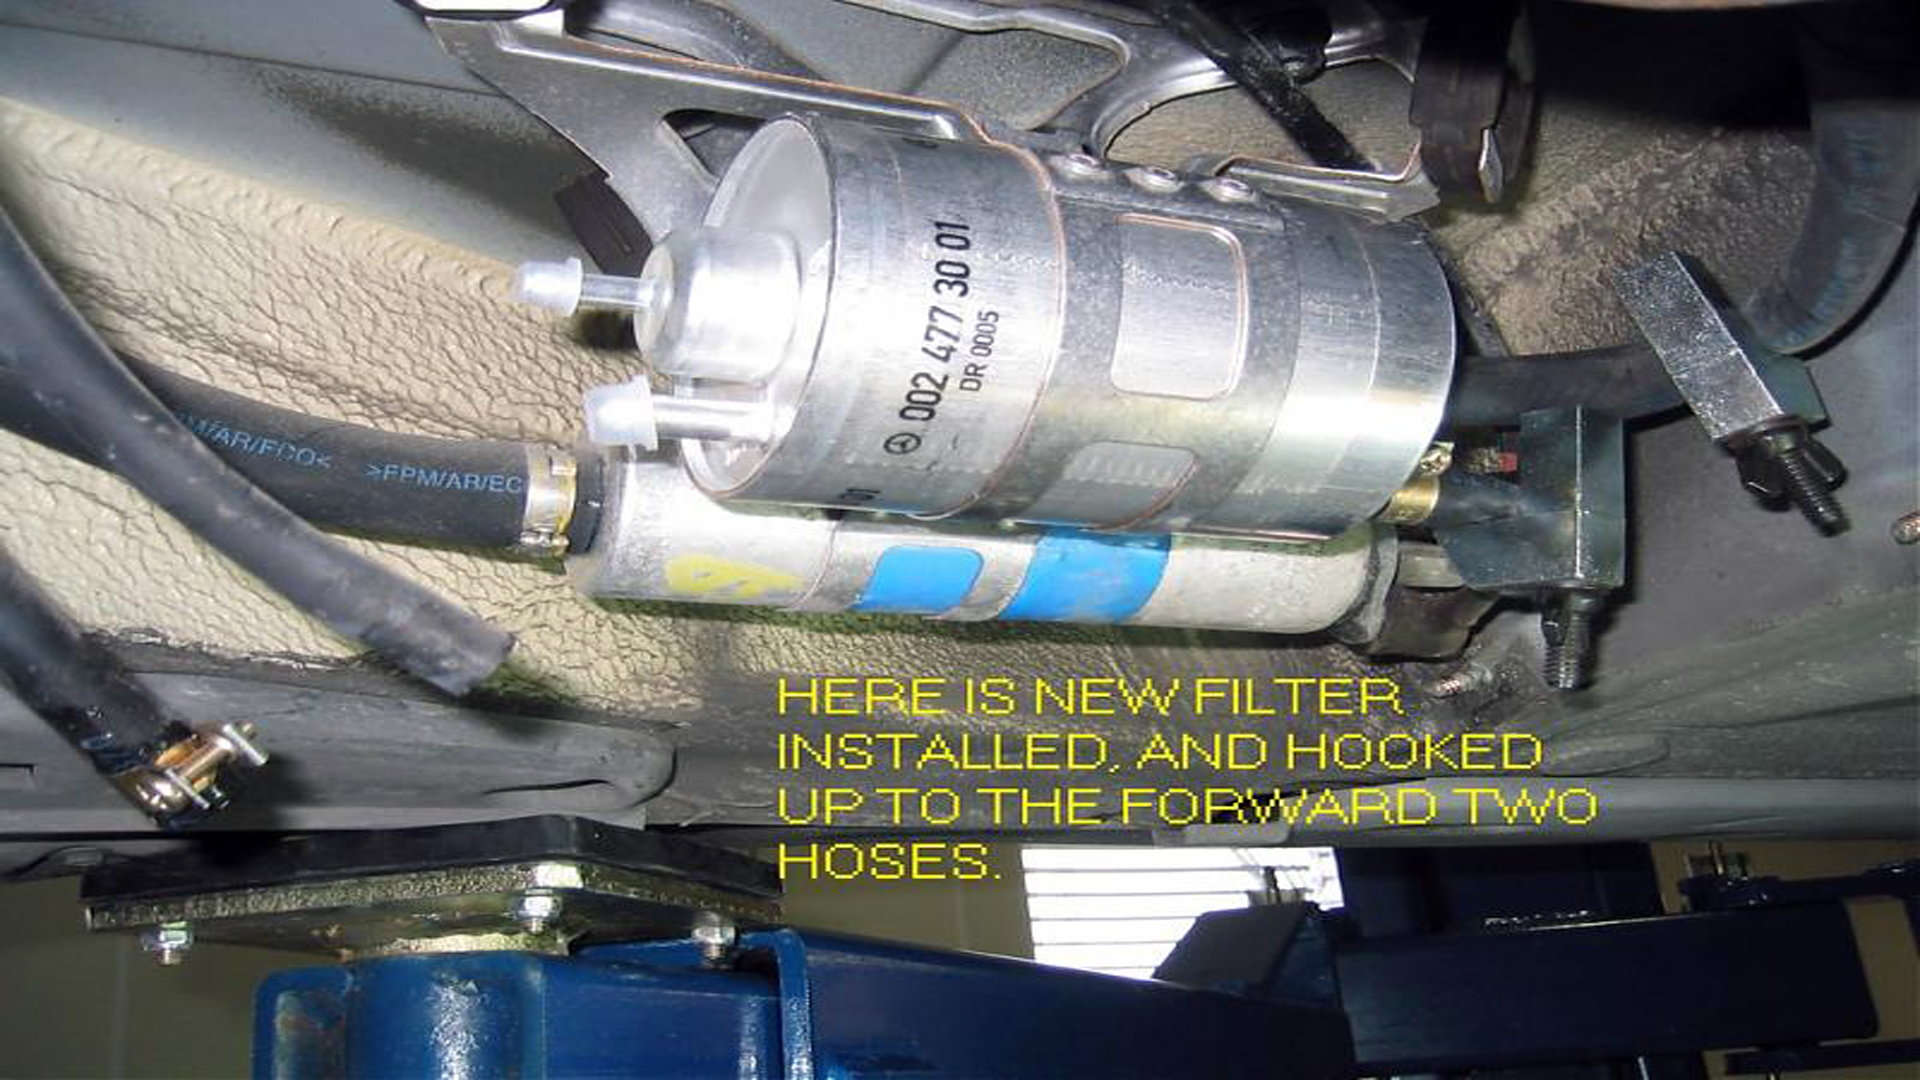 Mercedes Benz E Class and E Class AMG w211 How to Replace Fuel Filter - Mbworld